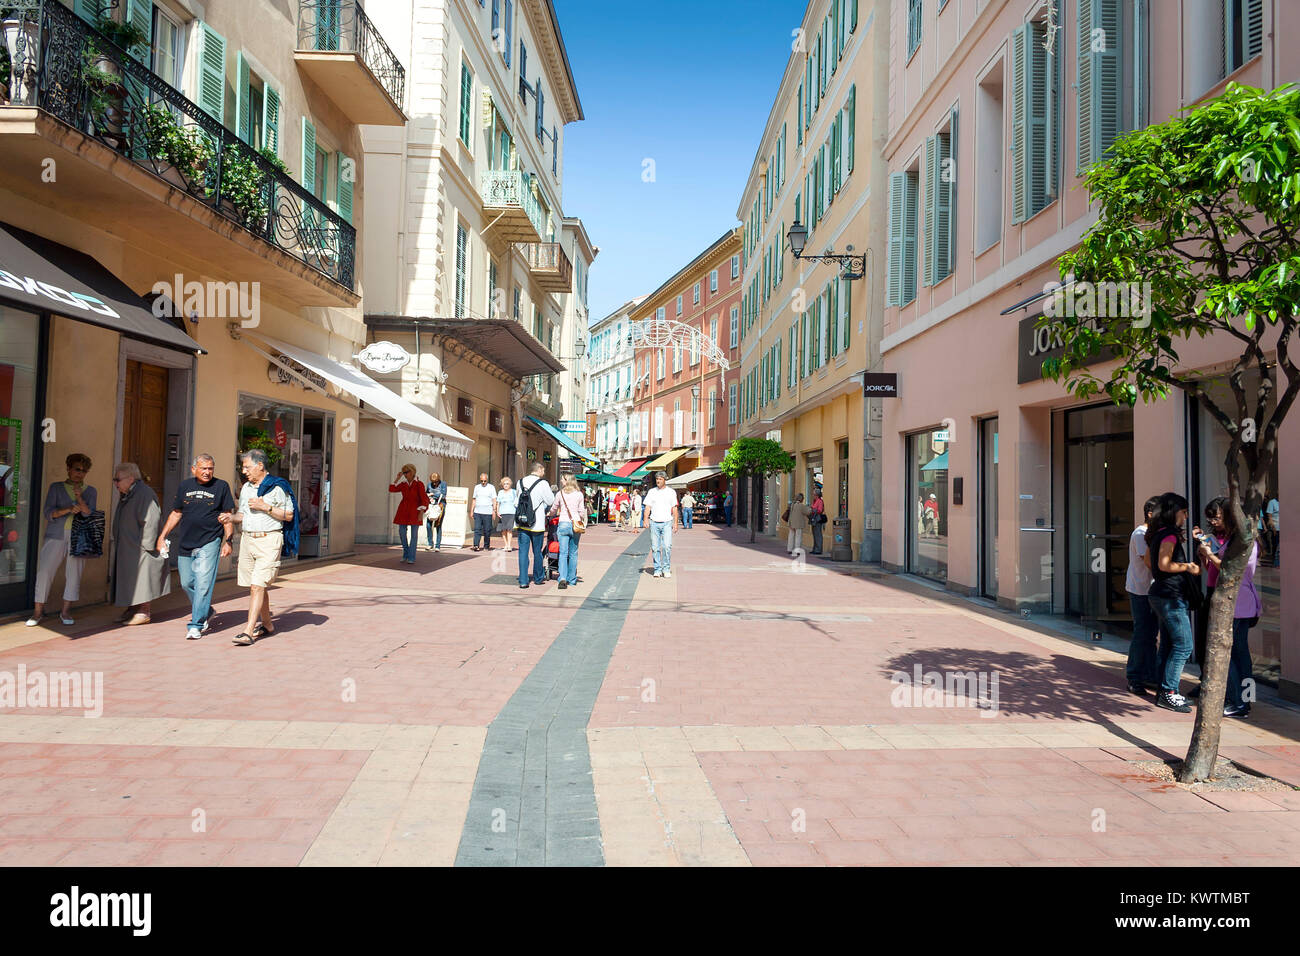 Felix Faure Stock Photos & Felix Faure Stock Images - Alamy